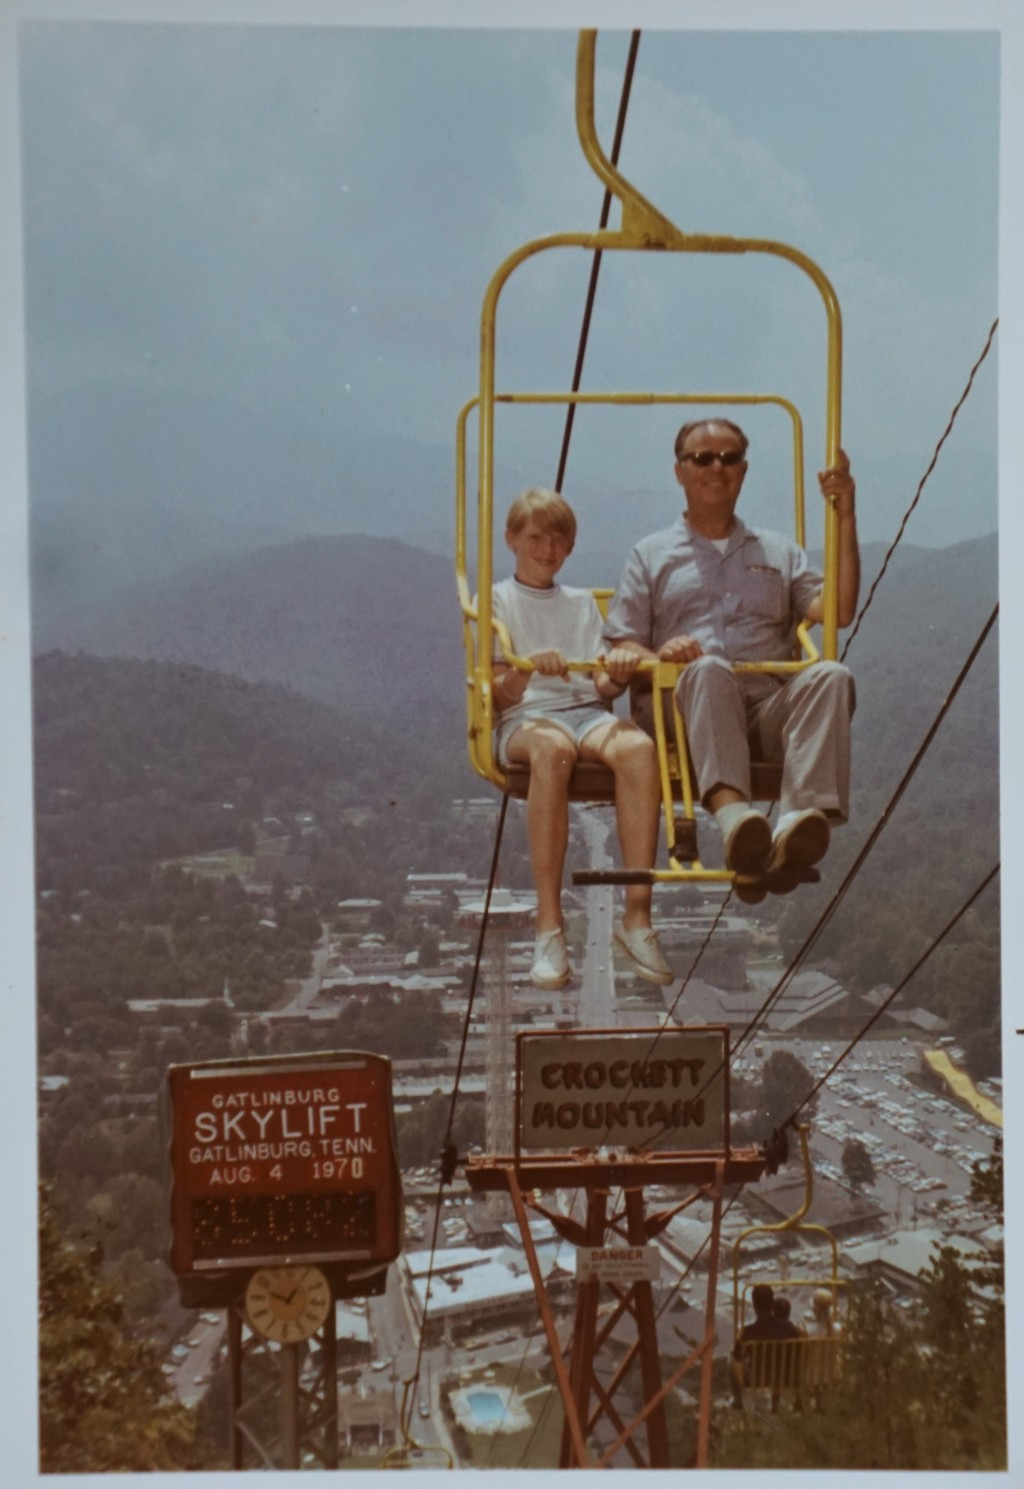 GatlinburgTN_August1970 (2)